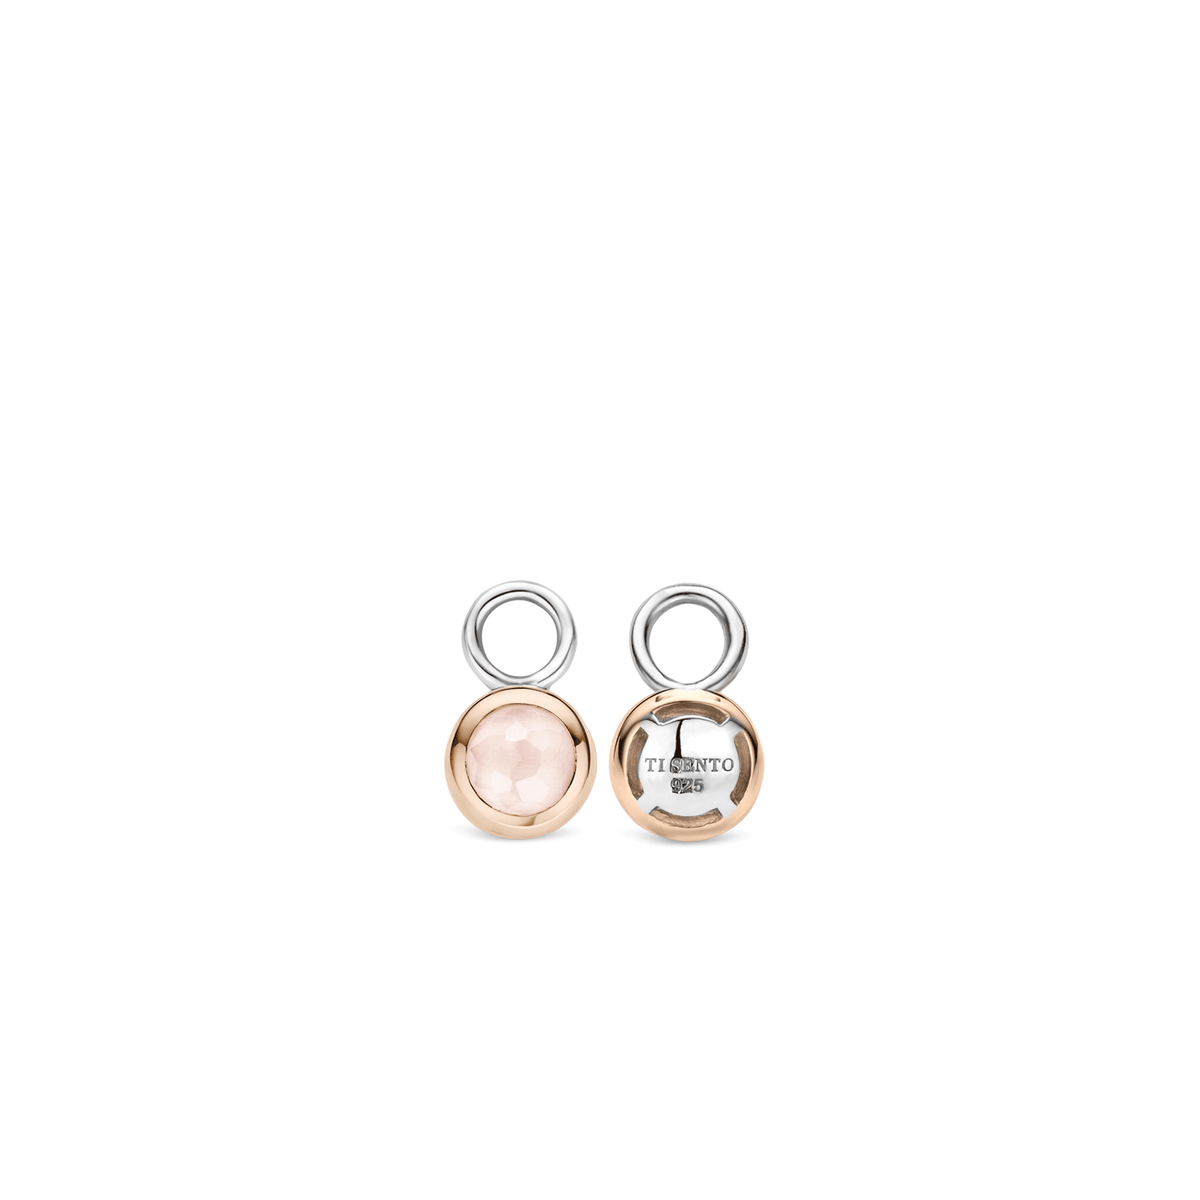 TI SENTO - Milano Ear Charms 9180LP